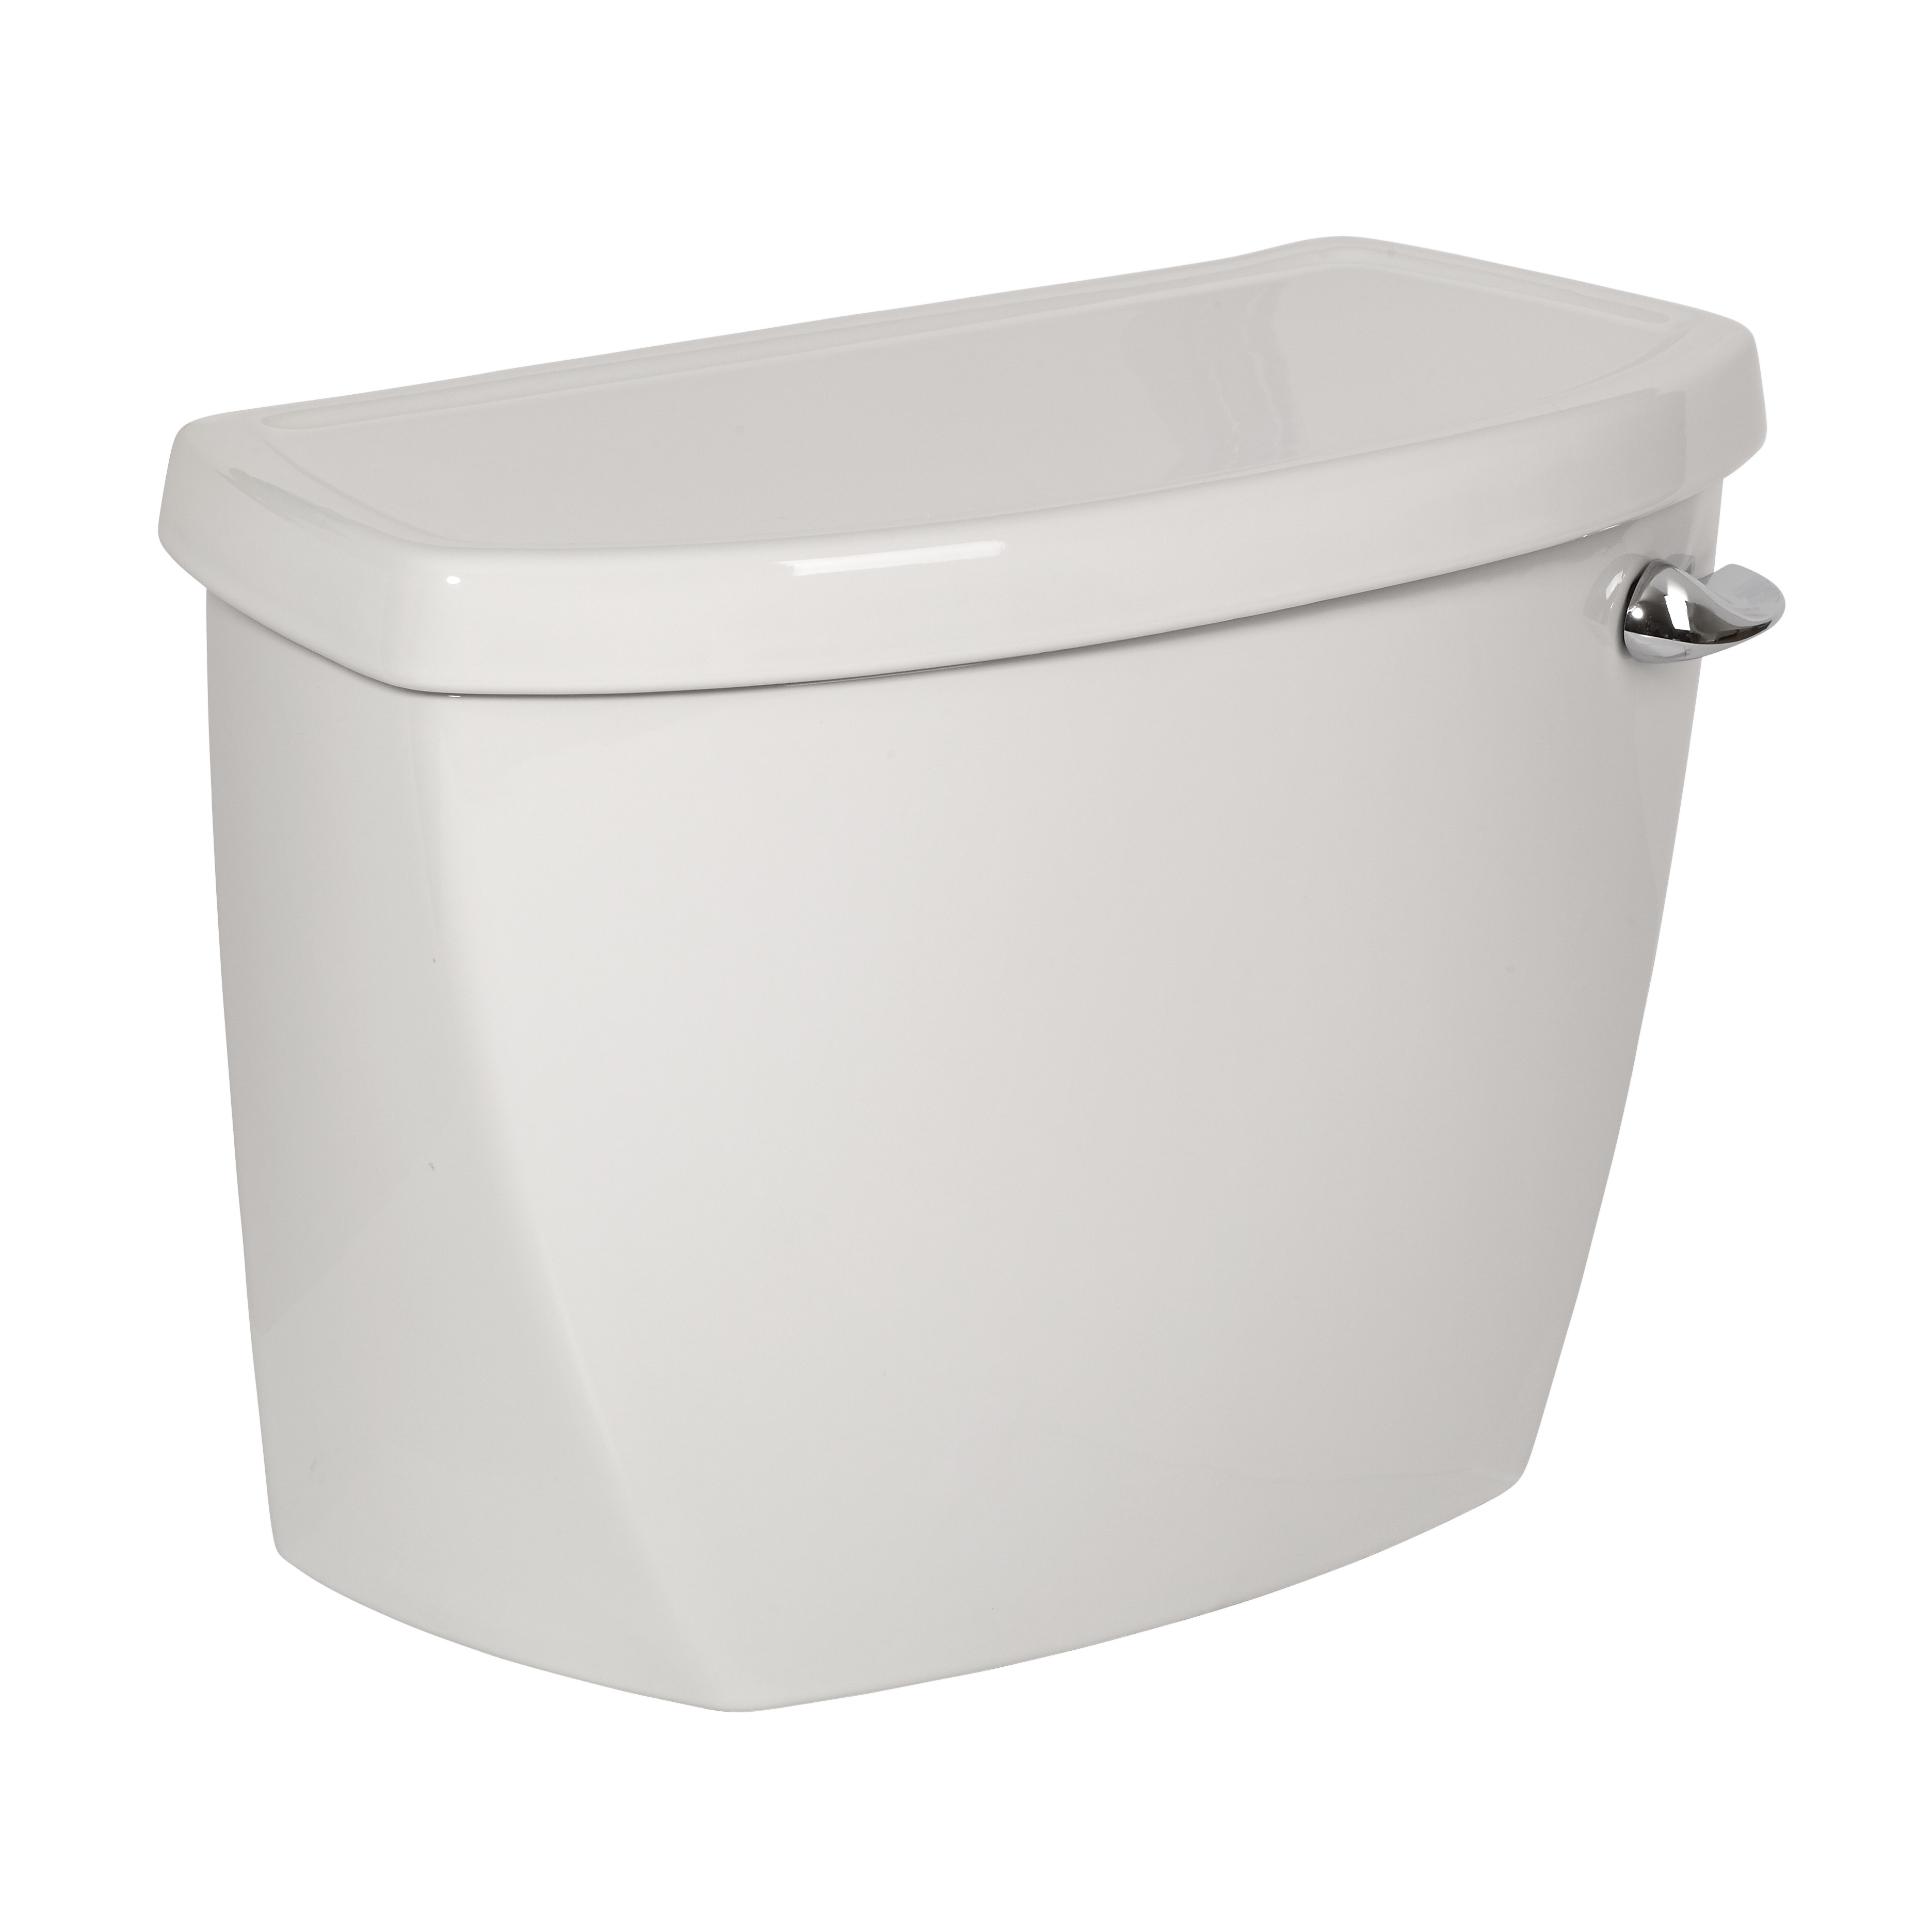 American Standard 4142.800.020 Toilet Tank With Right Hand Trip Lever, Cadet®, 1.6 gpf, White, Import